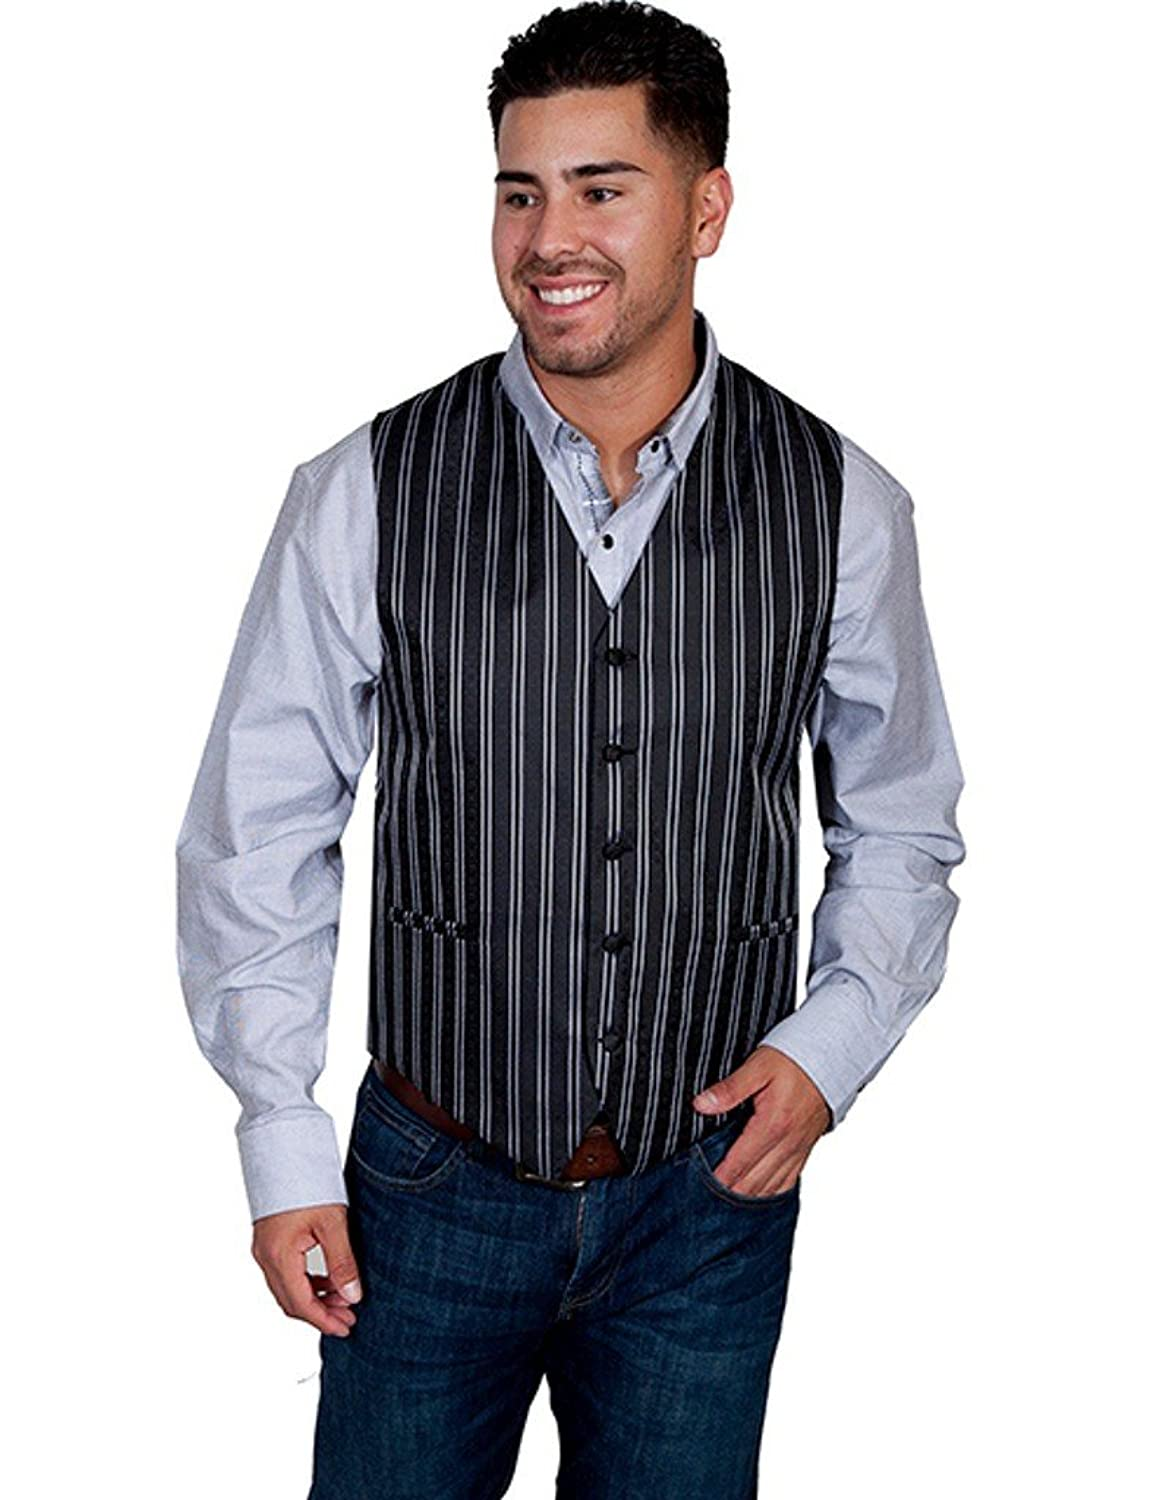 Victorian Men's Clothing, Fashion – 1840 to 1890s BIg TALL Sophisticated Double Pinstripe Western Vest $55.05 AT vintagedancer.com